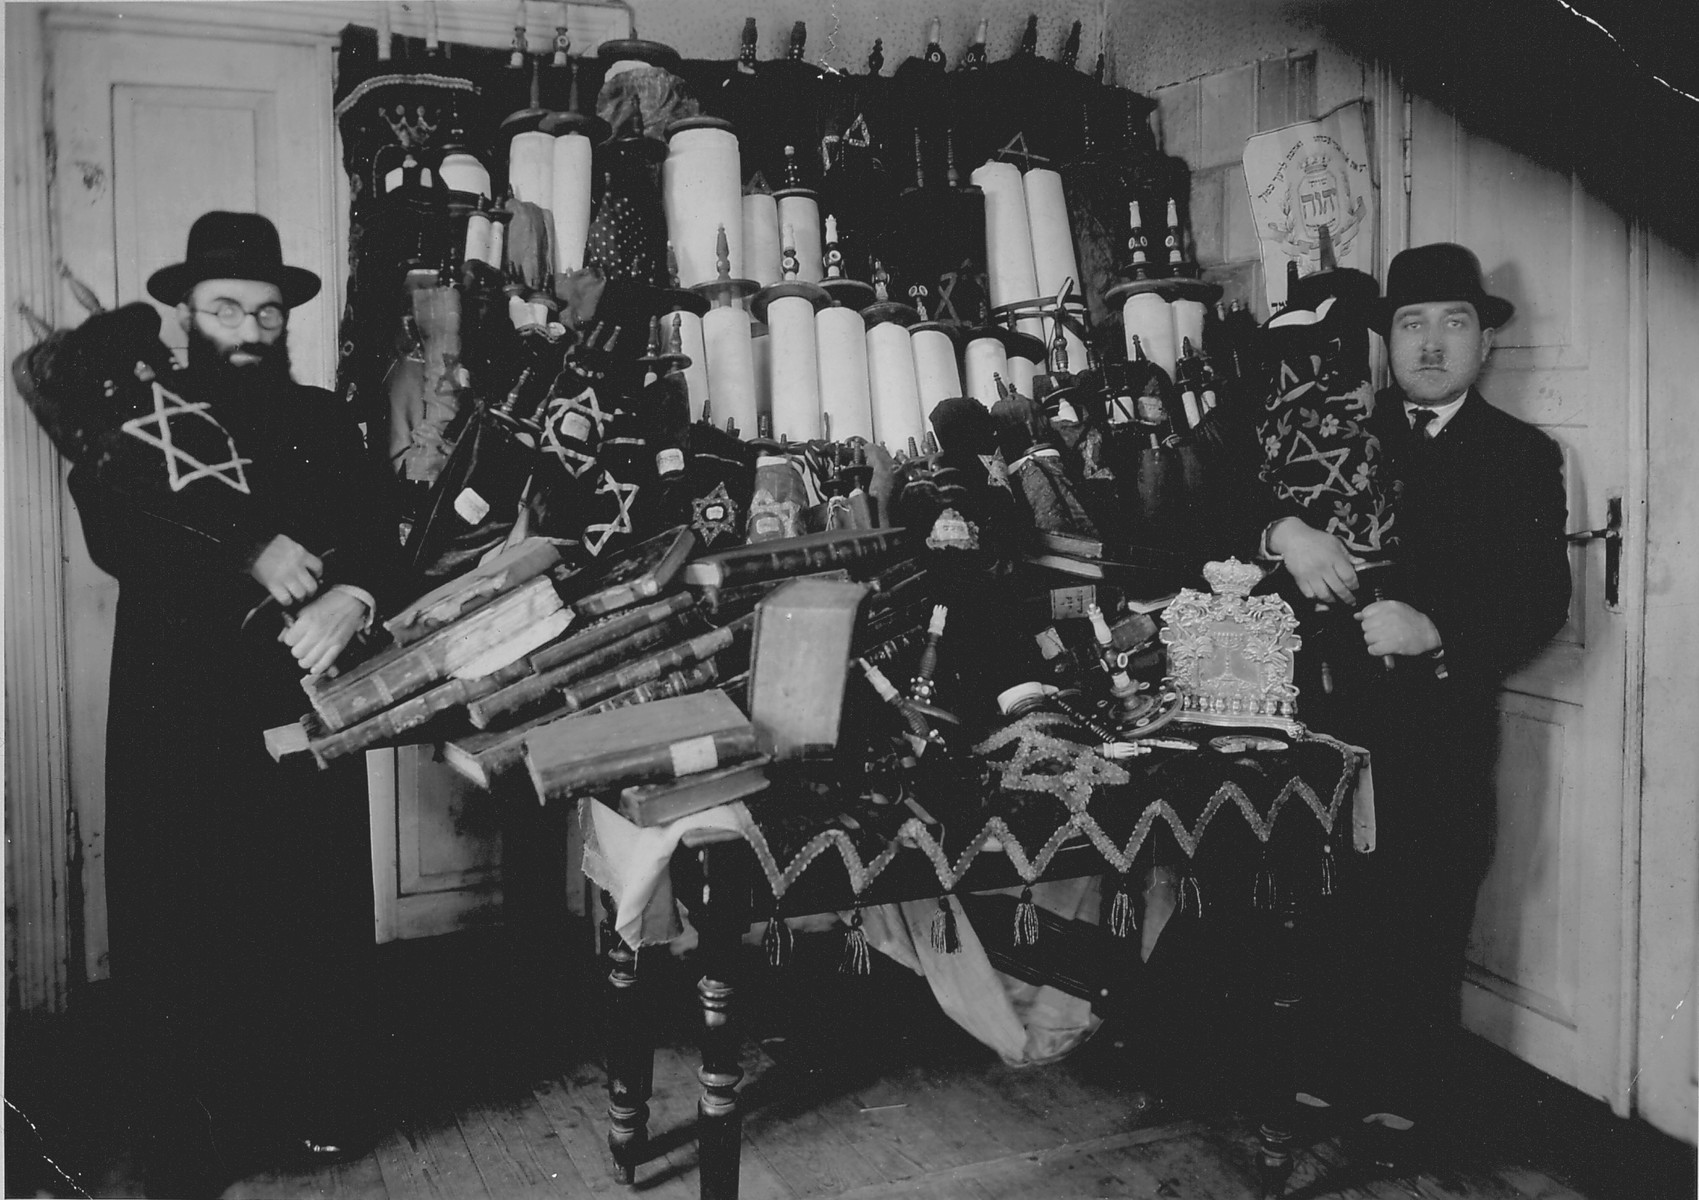 Rabbi Lifszyc (left) and another man pose in front of a cabinet full of Torah scrolls that were smuggled out of Suwalki.  Sixty scrolls and other holy items were rescued from hiding places in Suwalki, which had been occupied by Germany, and were taken to the synagogue in Kalvarija for safety.  While Lifszyc was in Vilnius, he tried to save the Torah scrolls from the Russian occupiers, but had to flee Vilnius and leave these behind.